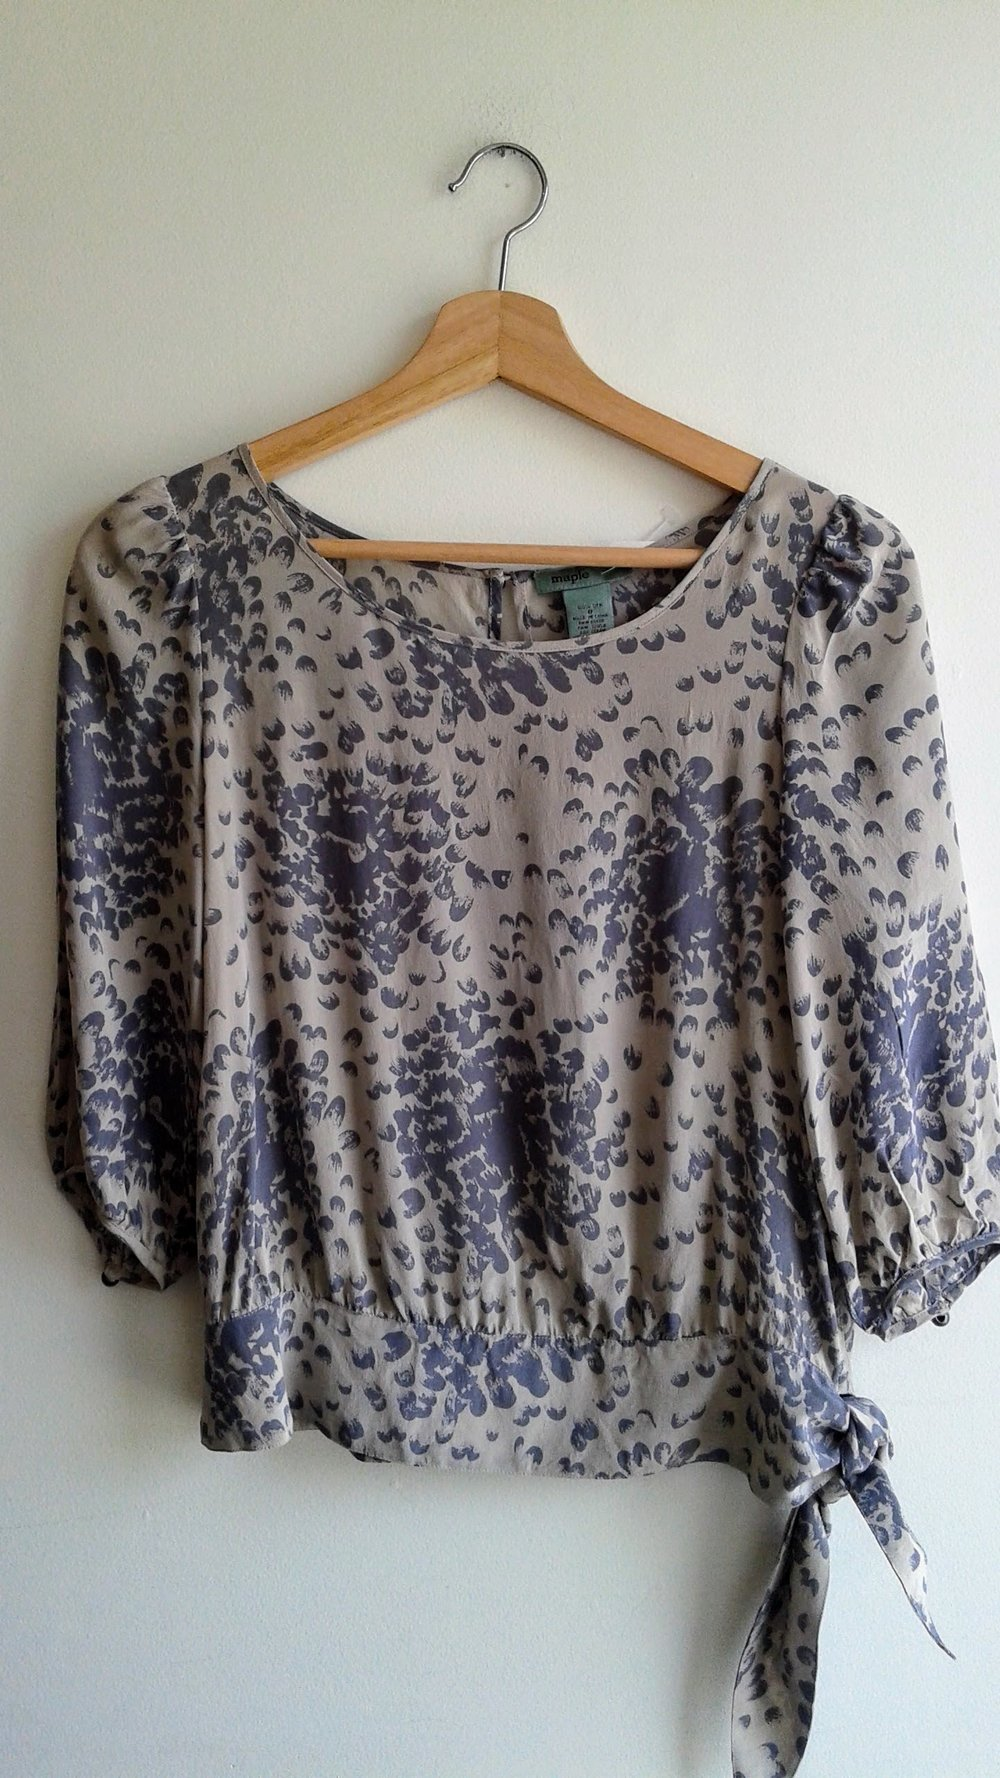 Maple  top; Size S, $28